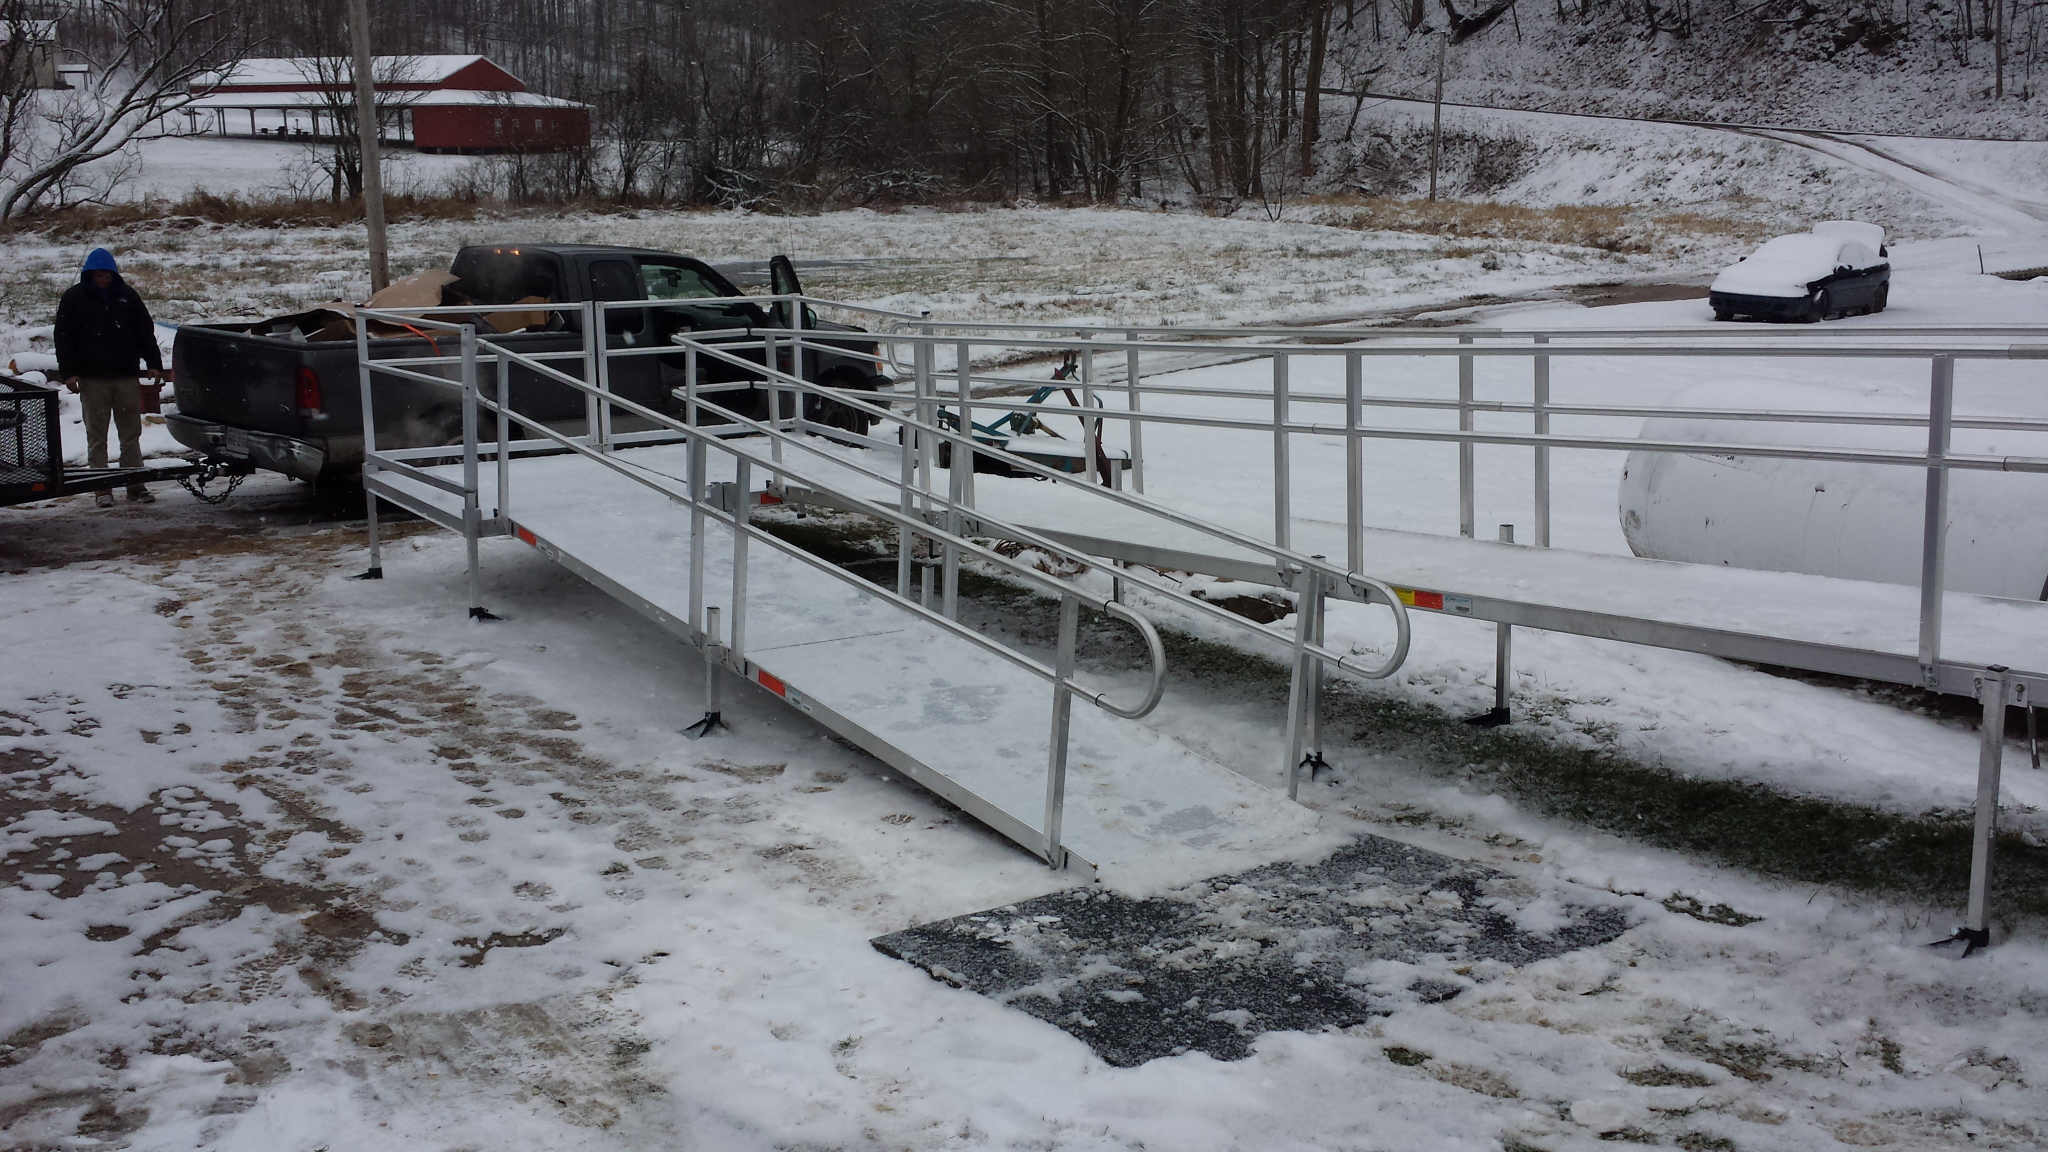 Snow covered ramp before ice-melt has been applied